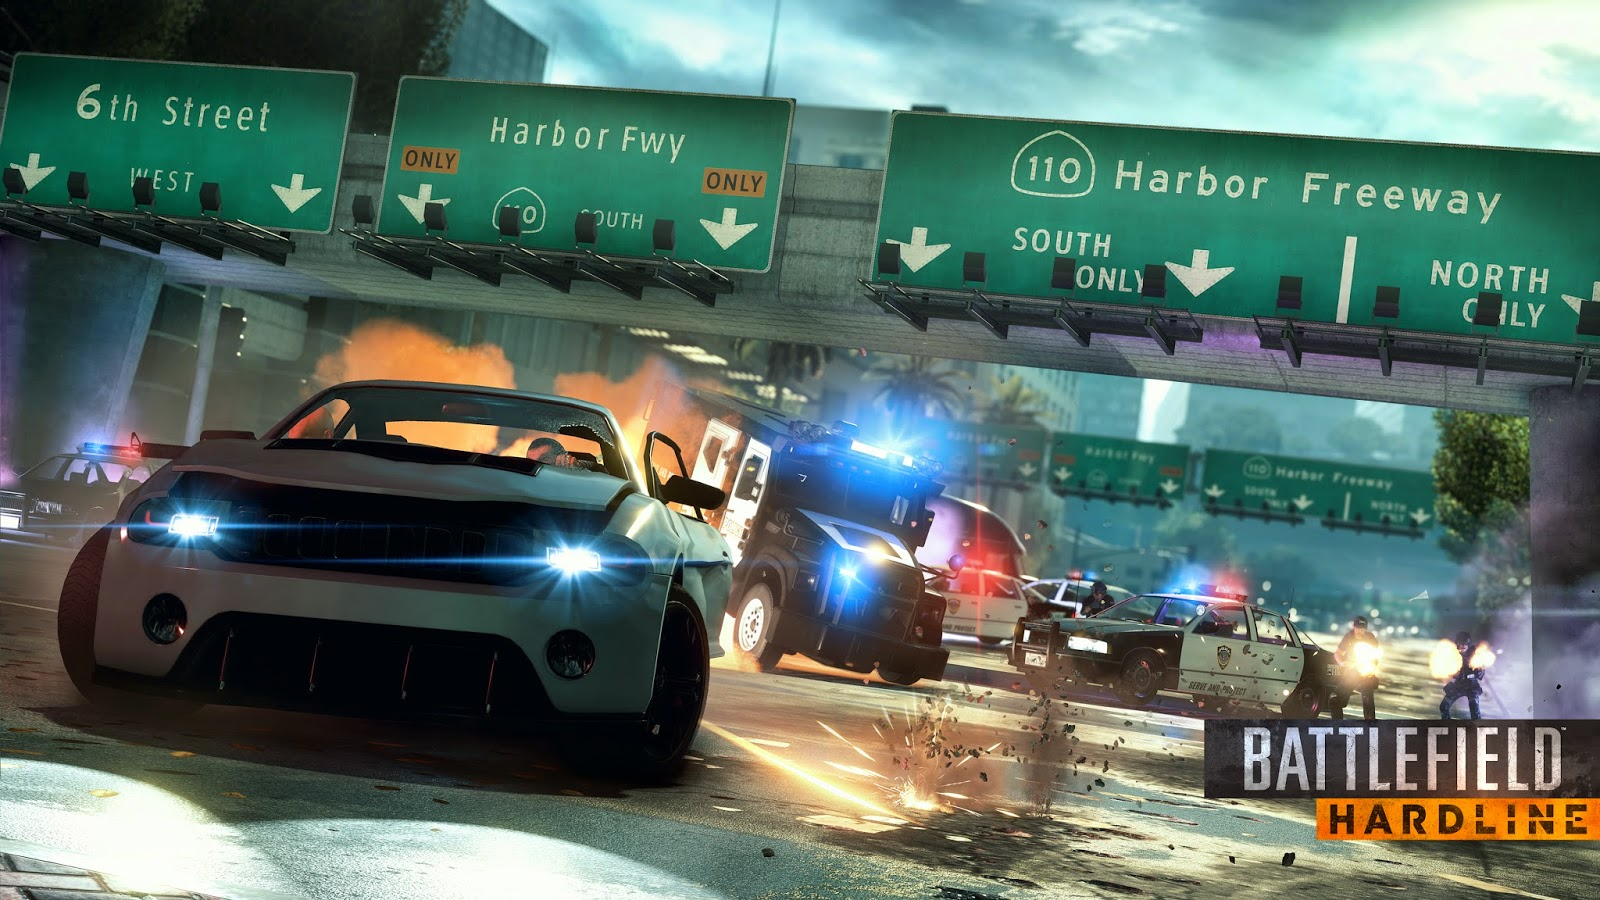 Battlefield hardline pc version